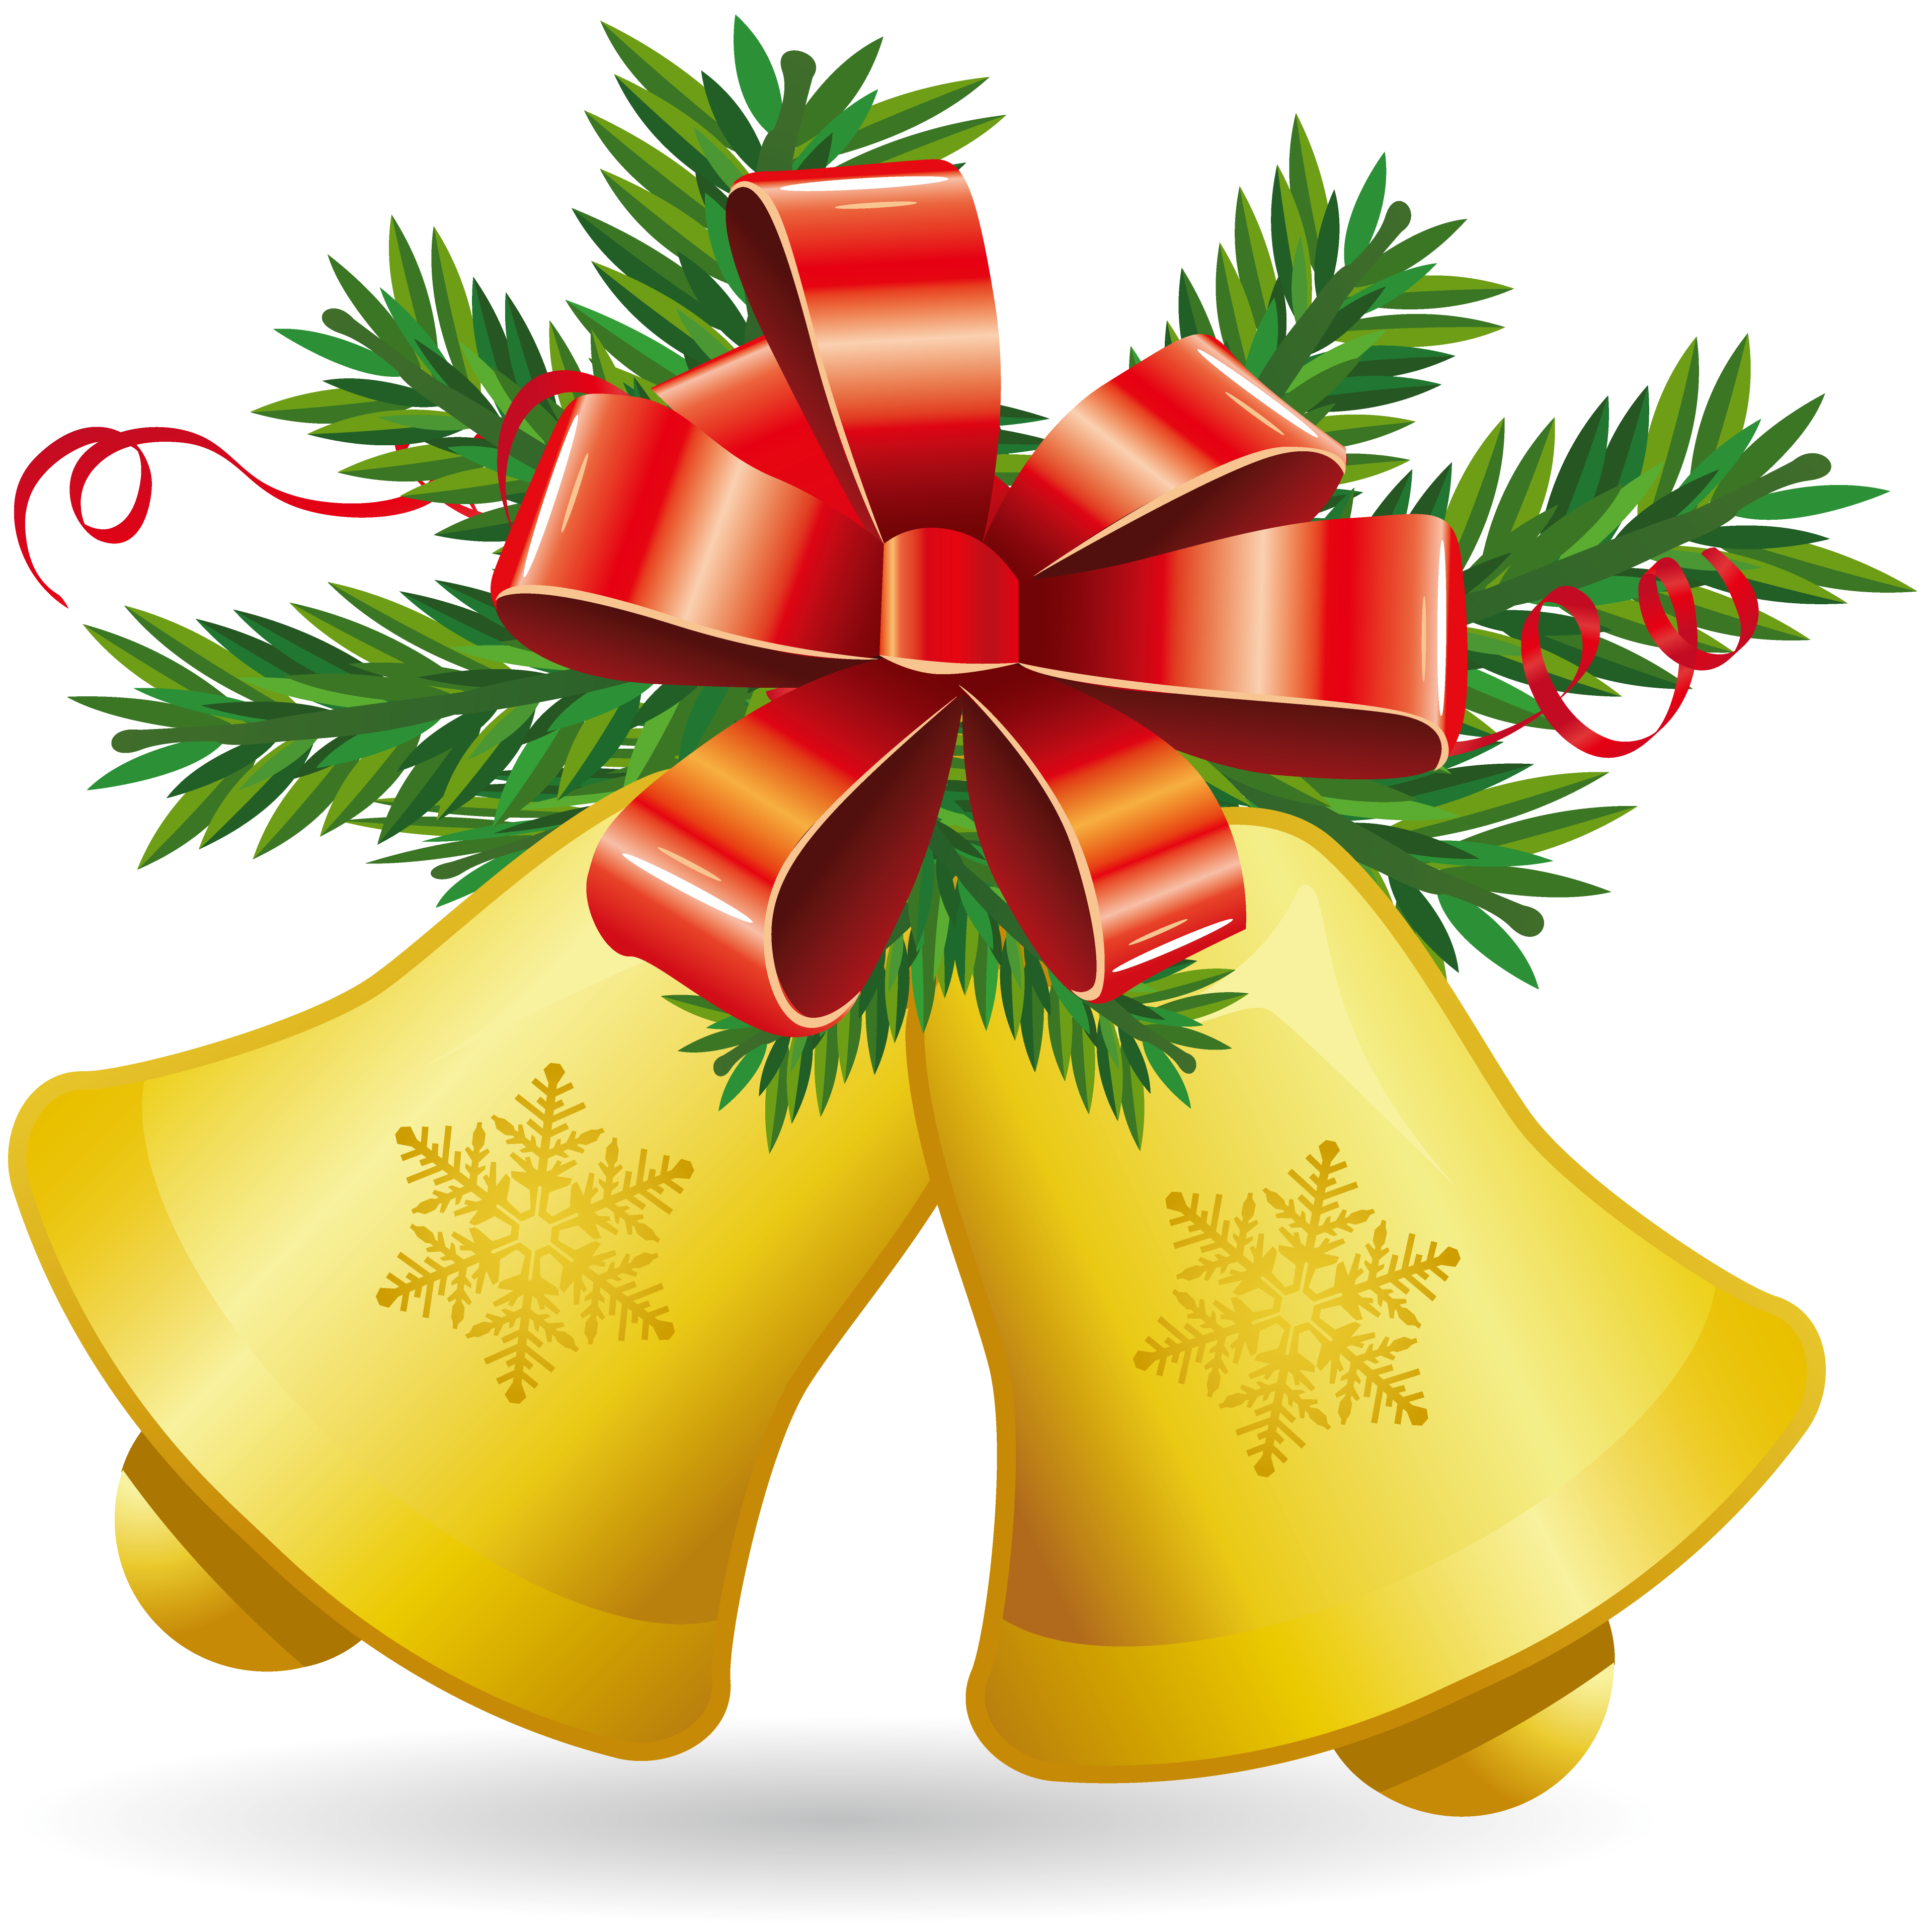 Mittens clipart attire. Holiday celebrations at the